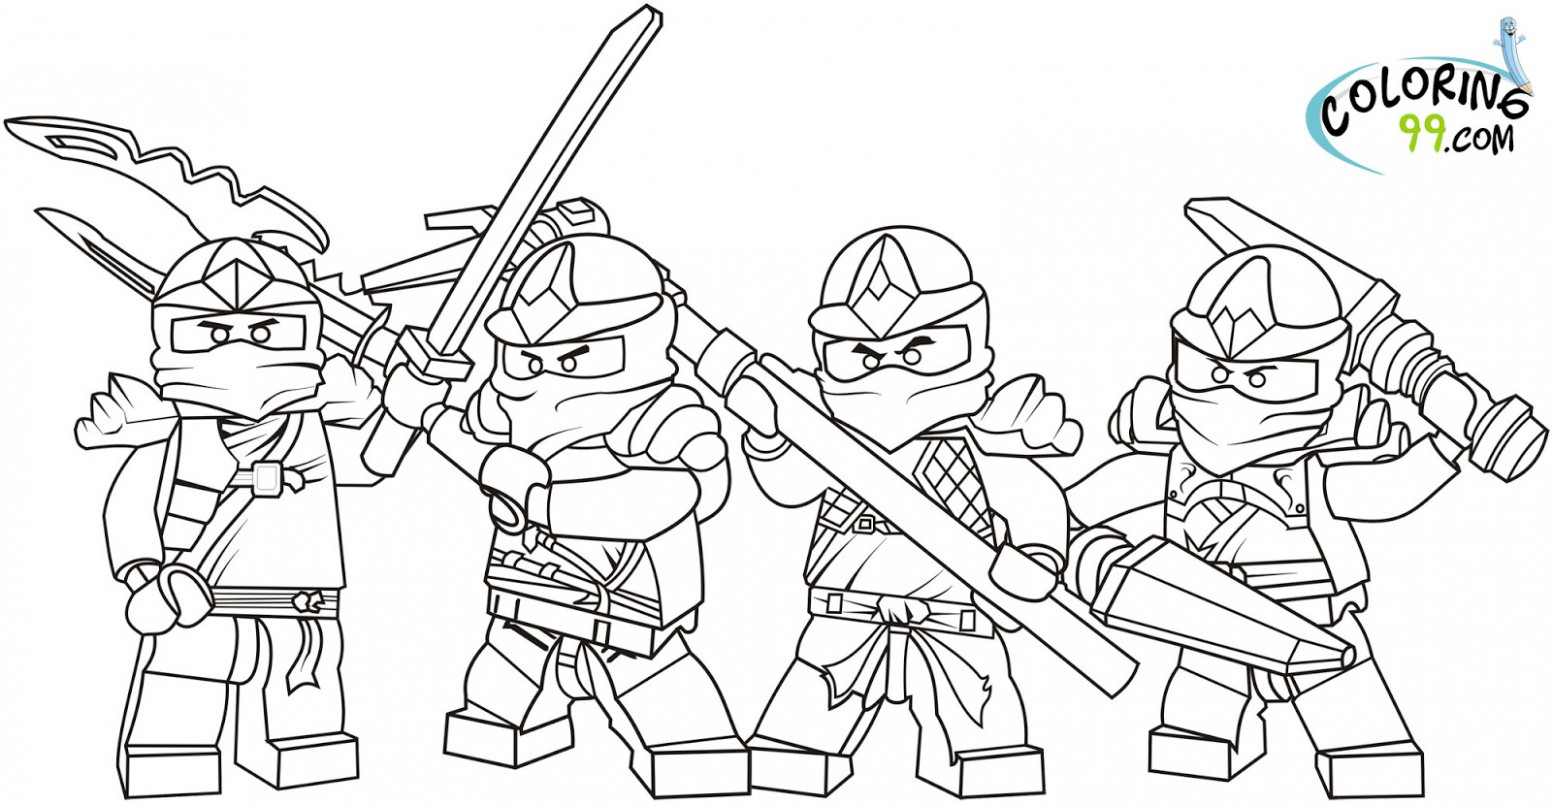 Lego Coloring Book - Coloring Pages - lego coloring book